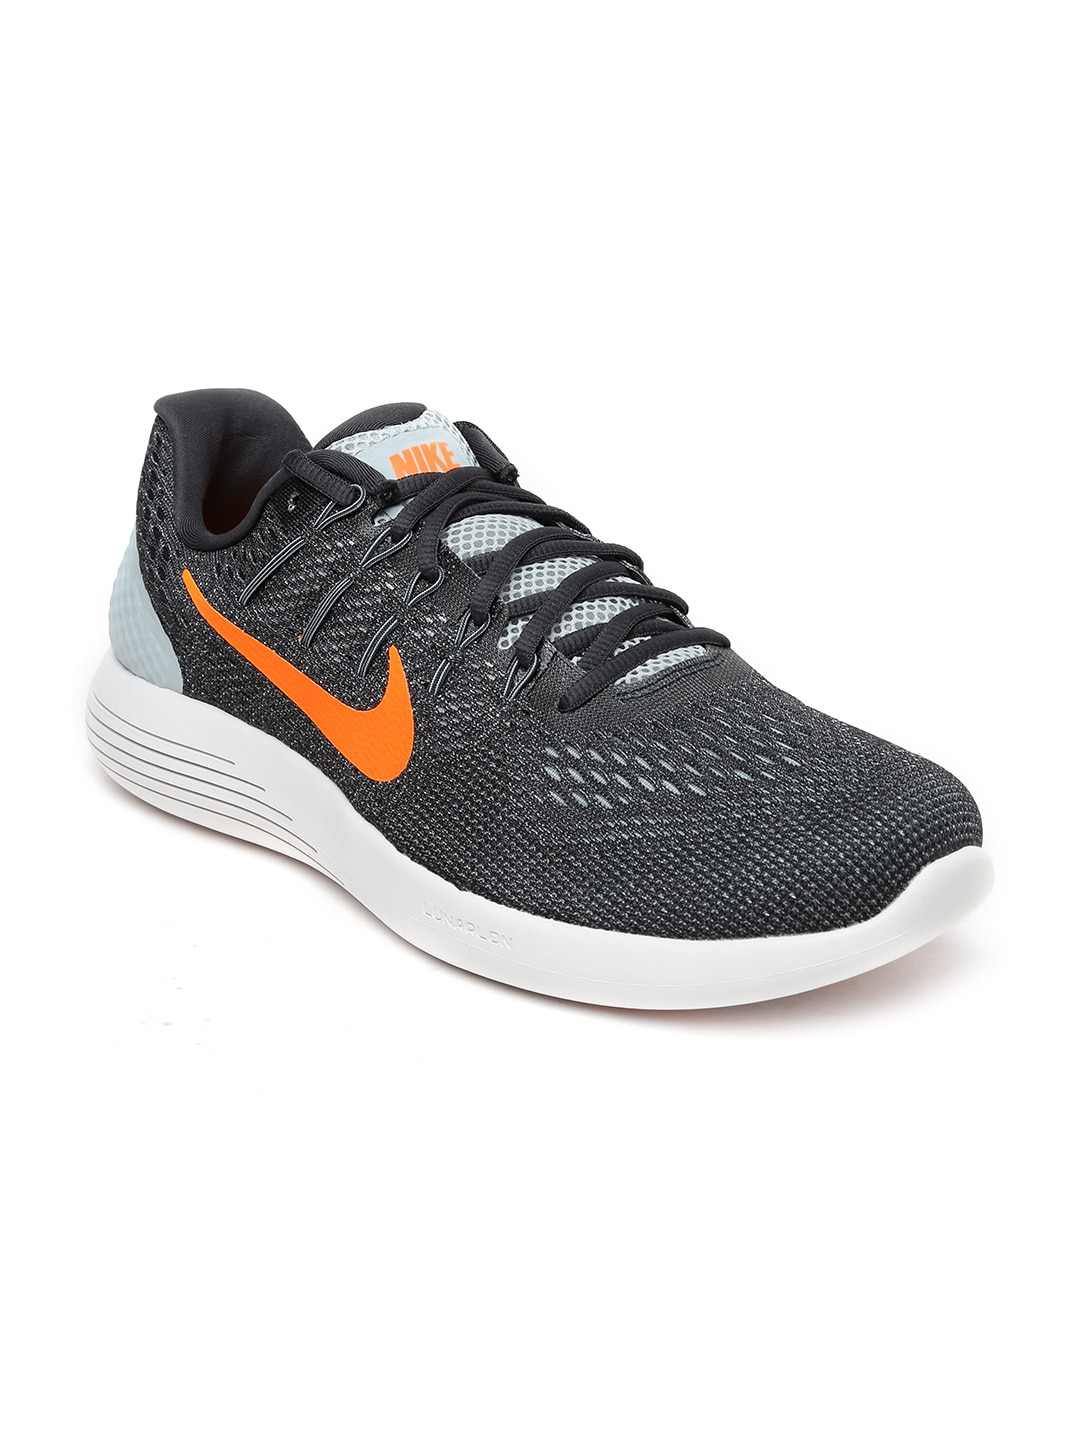 Nike 843725-009 Men Charcoal Grey Lunarglide 8 Running Shoes- Price in India a0dc96b9f2